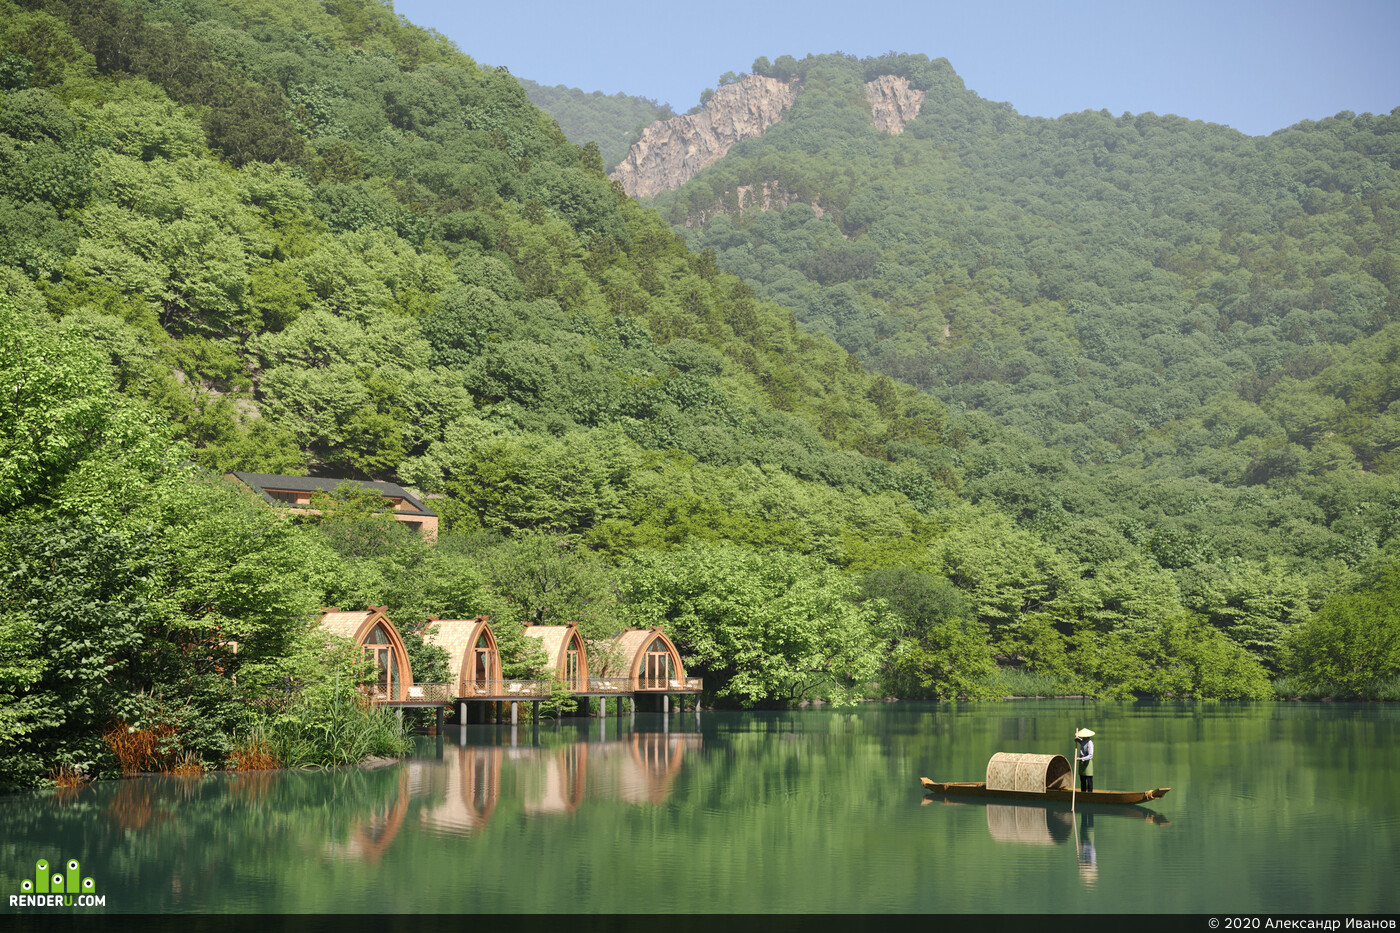 boat, river, river house, Nature, environment, the mountains, trees, archviz